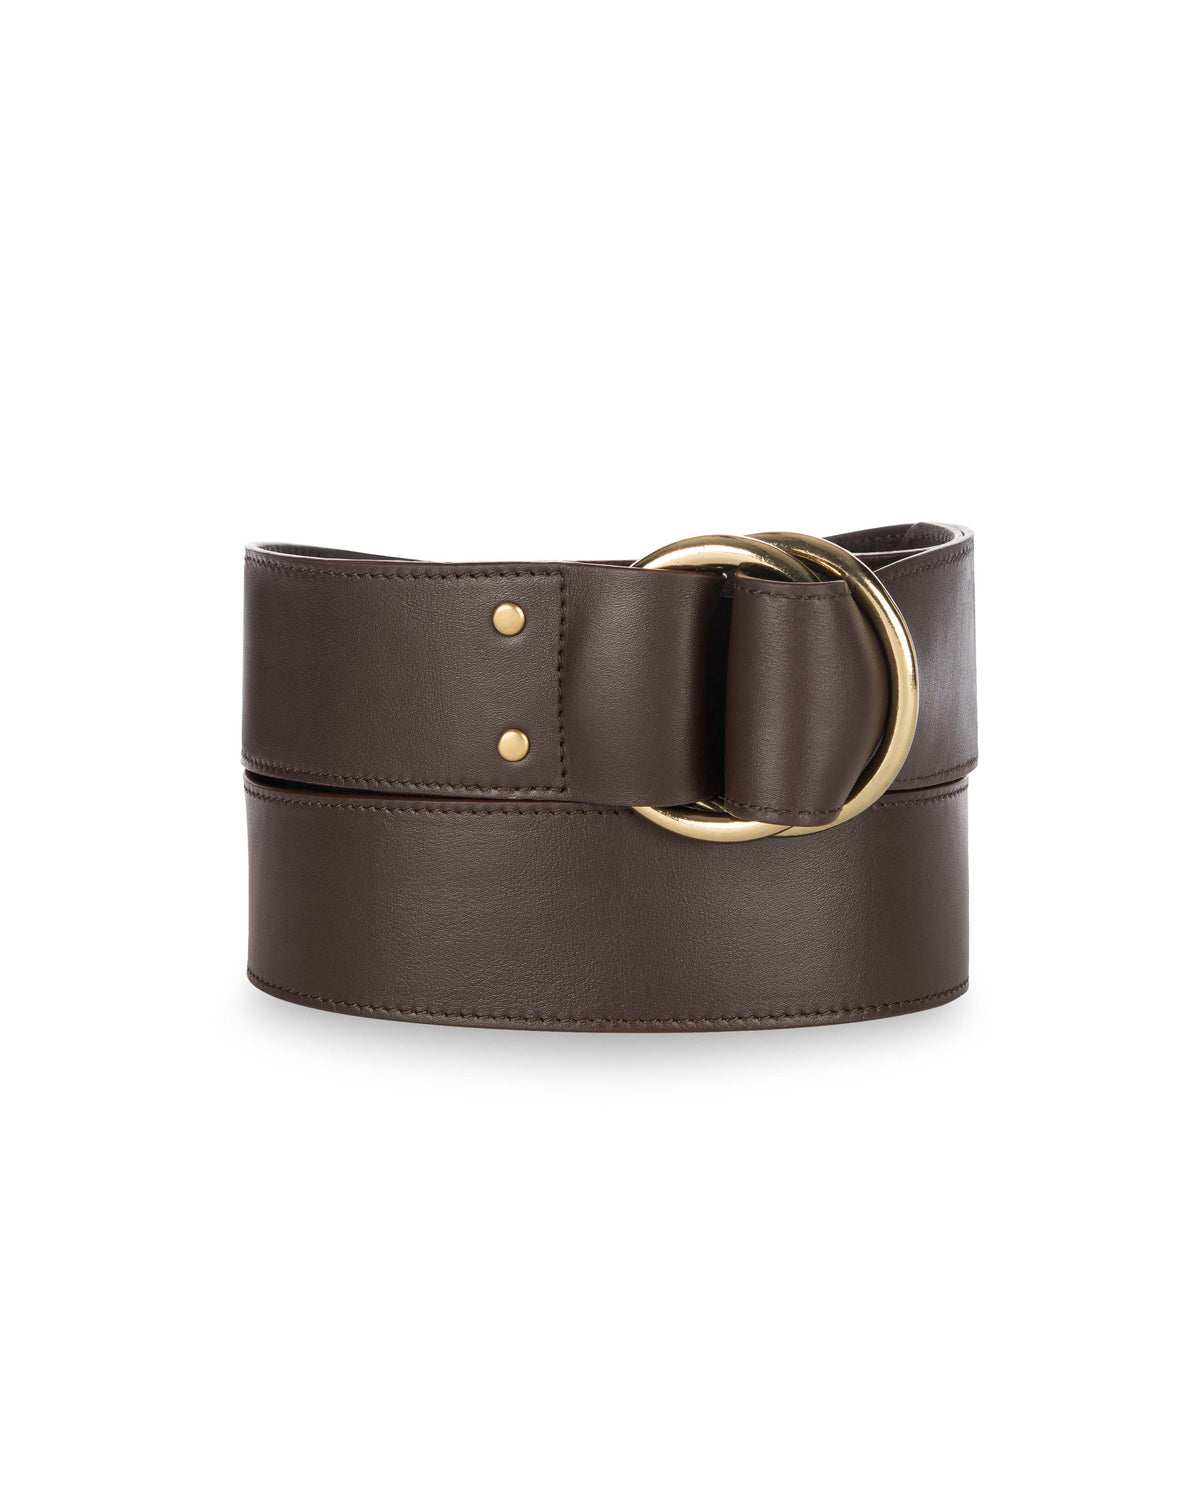 "2"" DOUBLE RING BELT in Chocolate Napa"